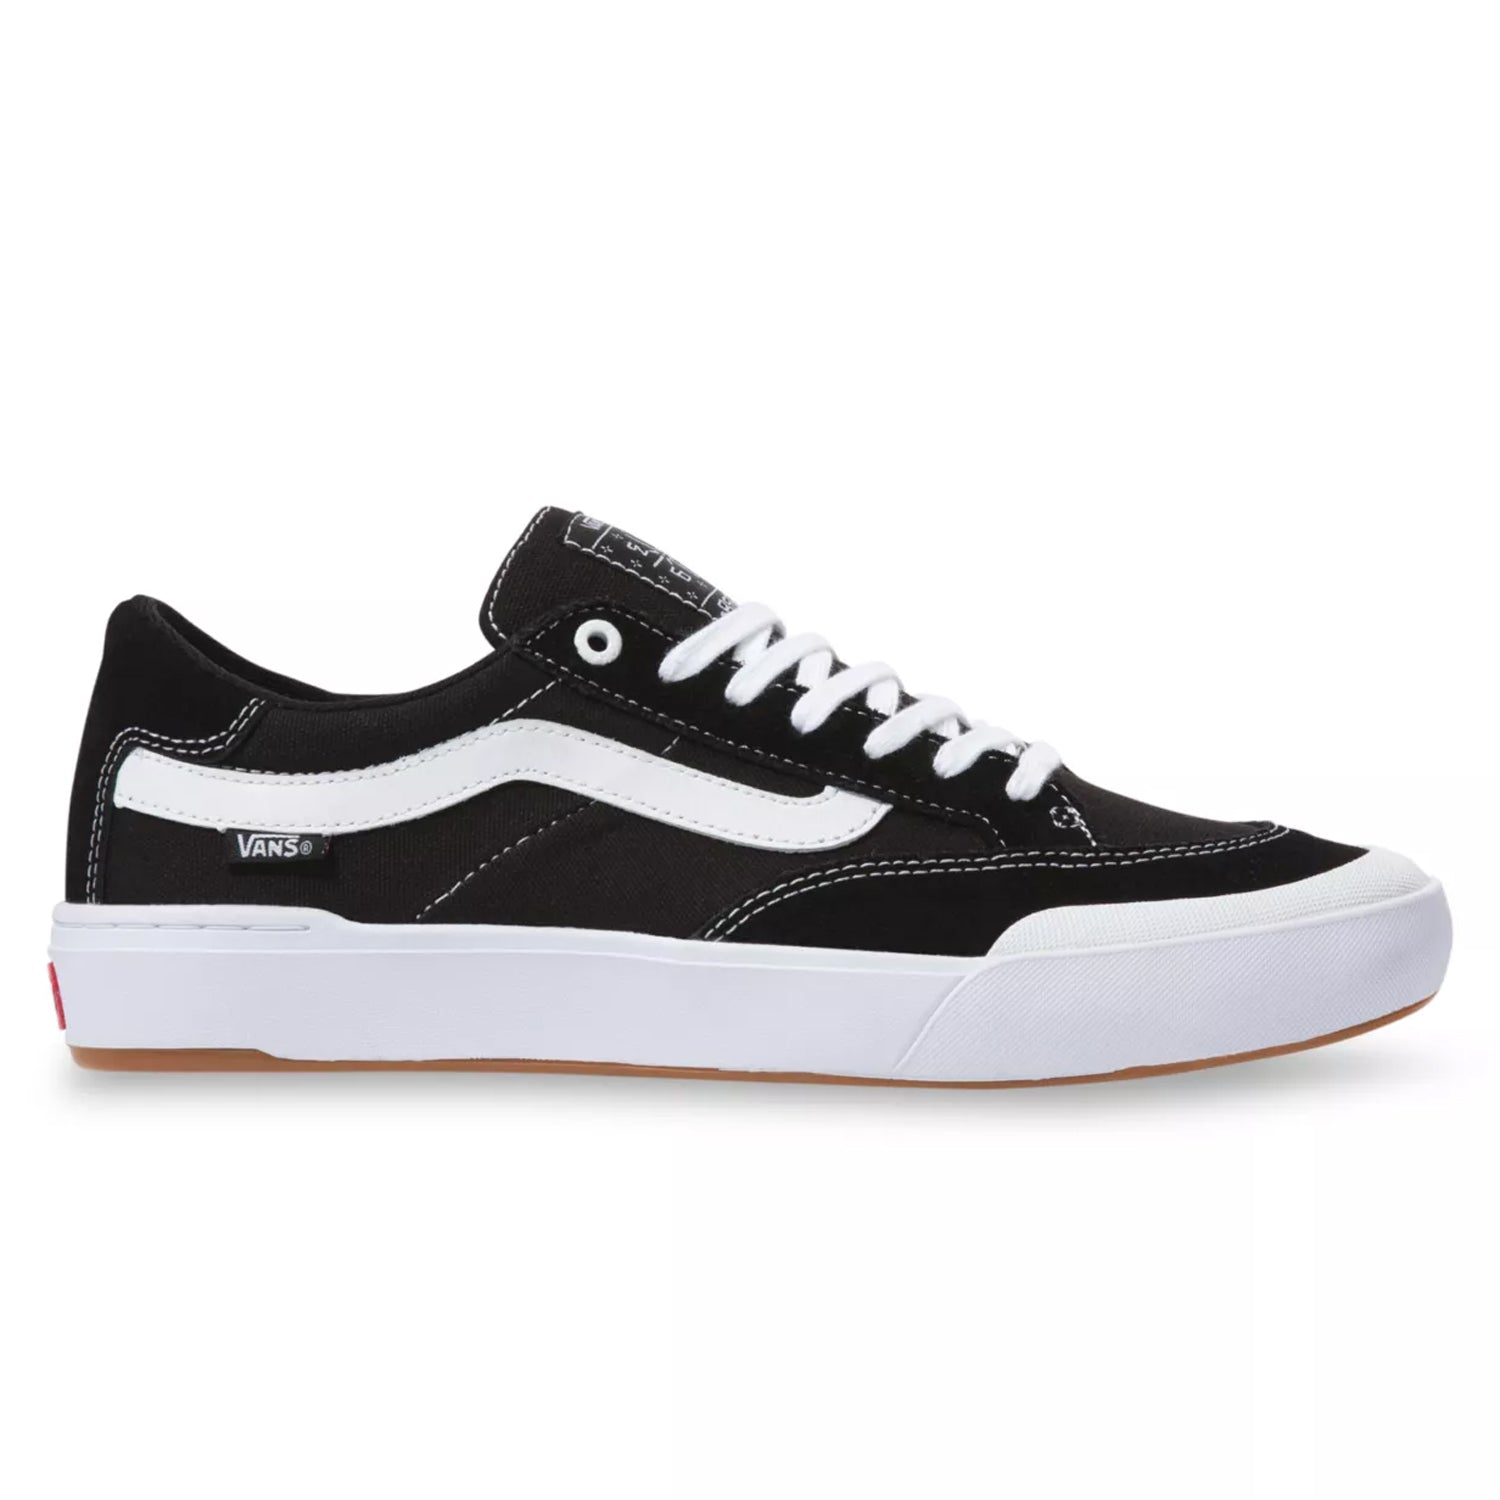 Vans Berle Pro Black/True White